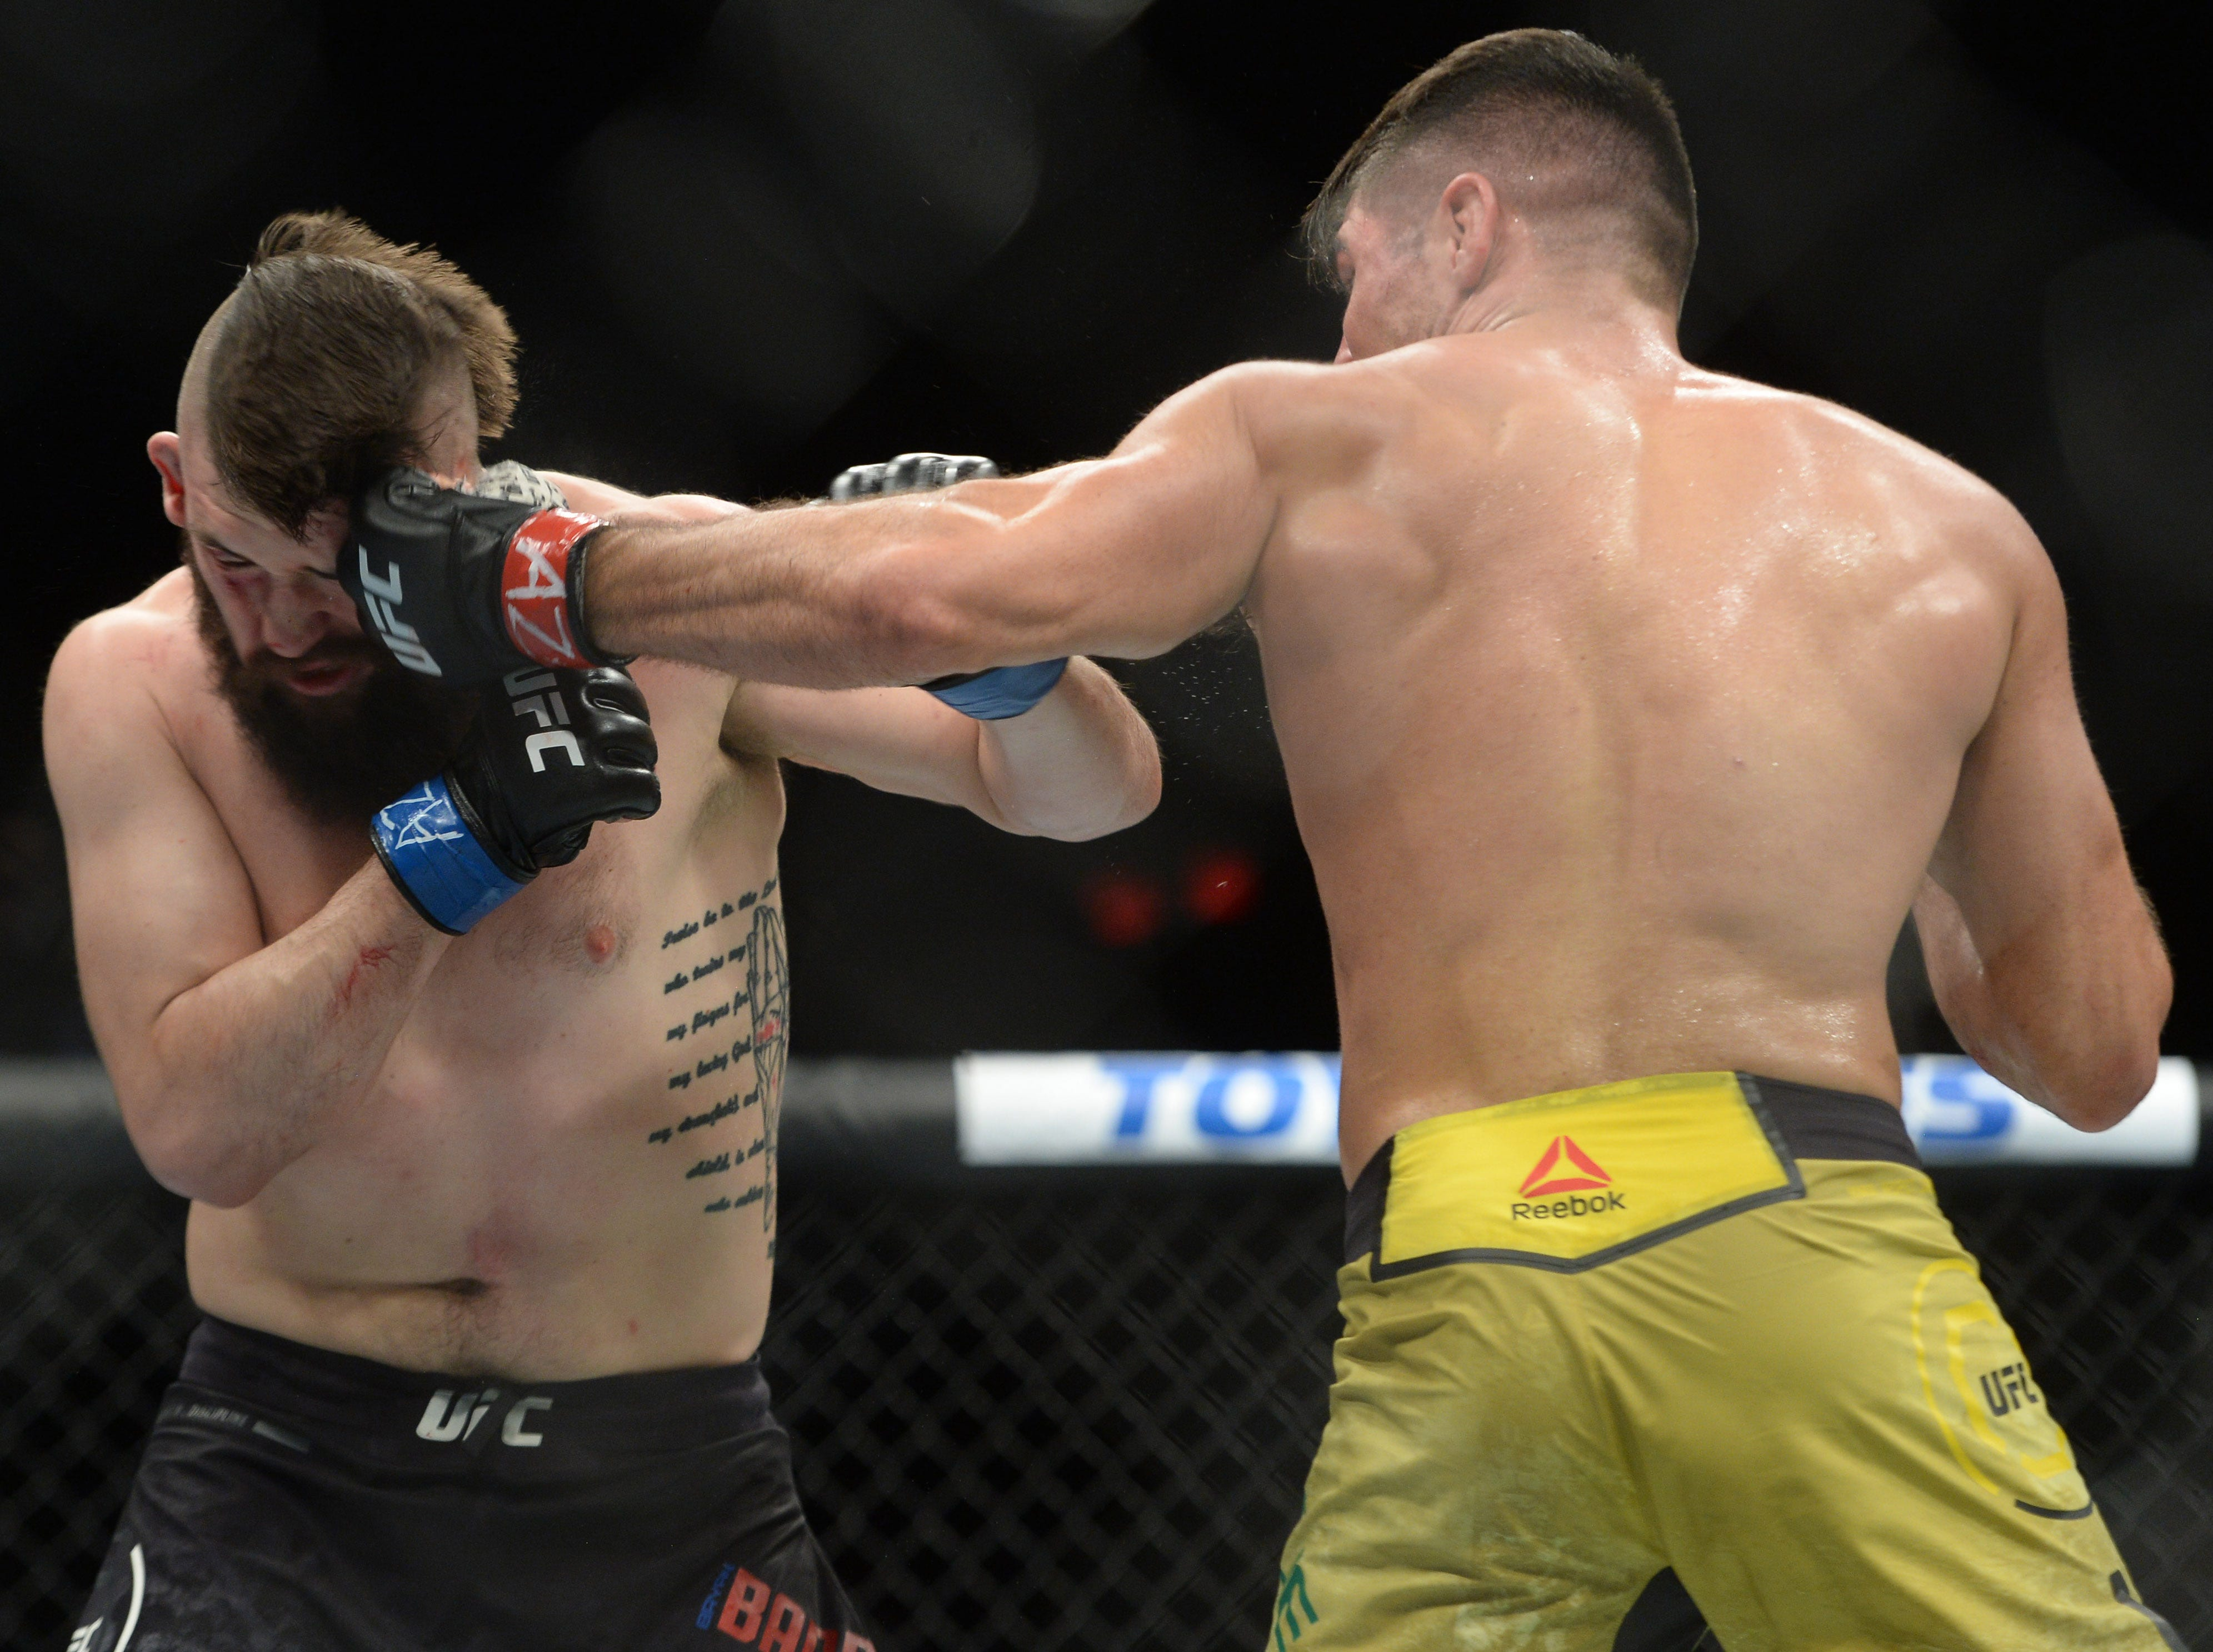 Vicente Luque hits Bryan Barberena with a left hand during their welterweight fight at Talking Stick Resort Arena. Luque won third round with knockout.